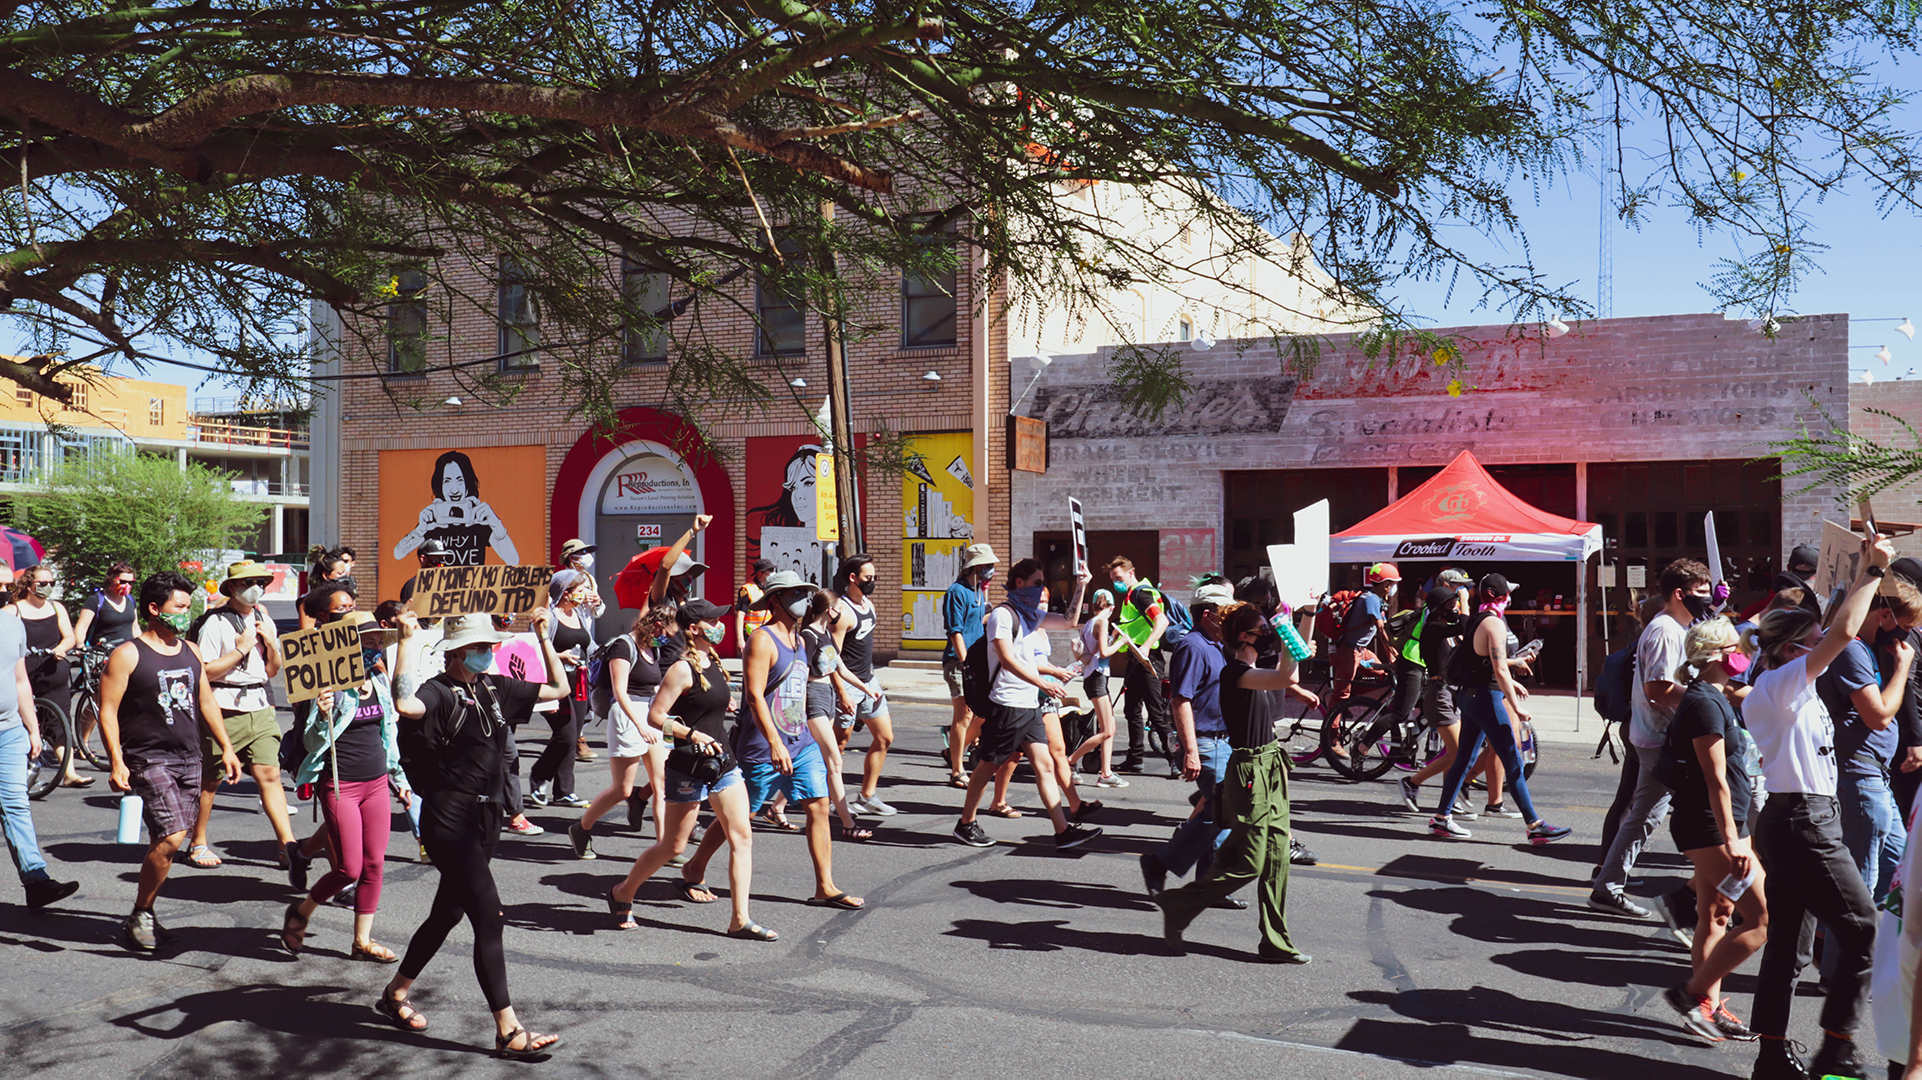 Protesters march through downtown Tucson on July 4th in support of Black Lives Matter movement and against police brutality.